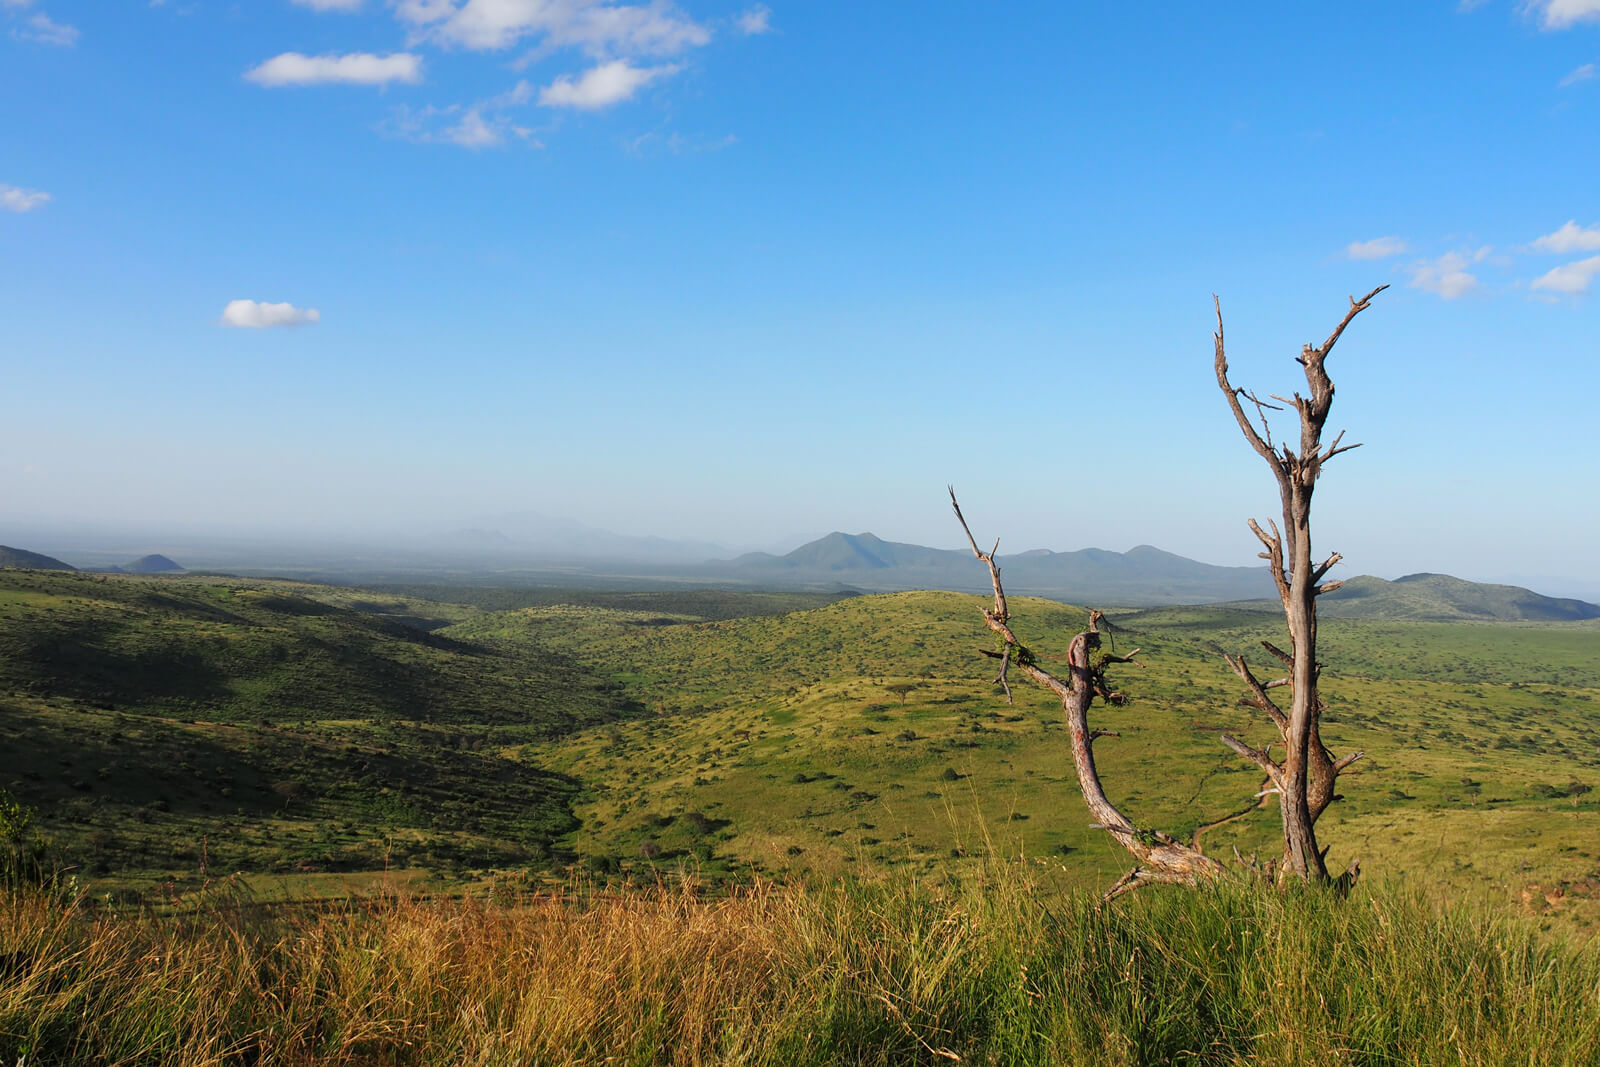 A view of the Lewa Wildlife Conservancy in Kenya